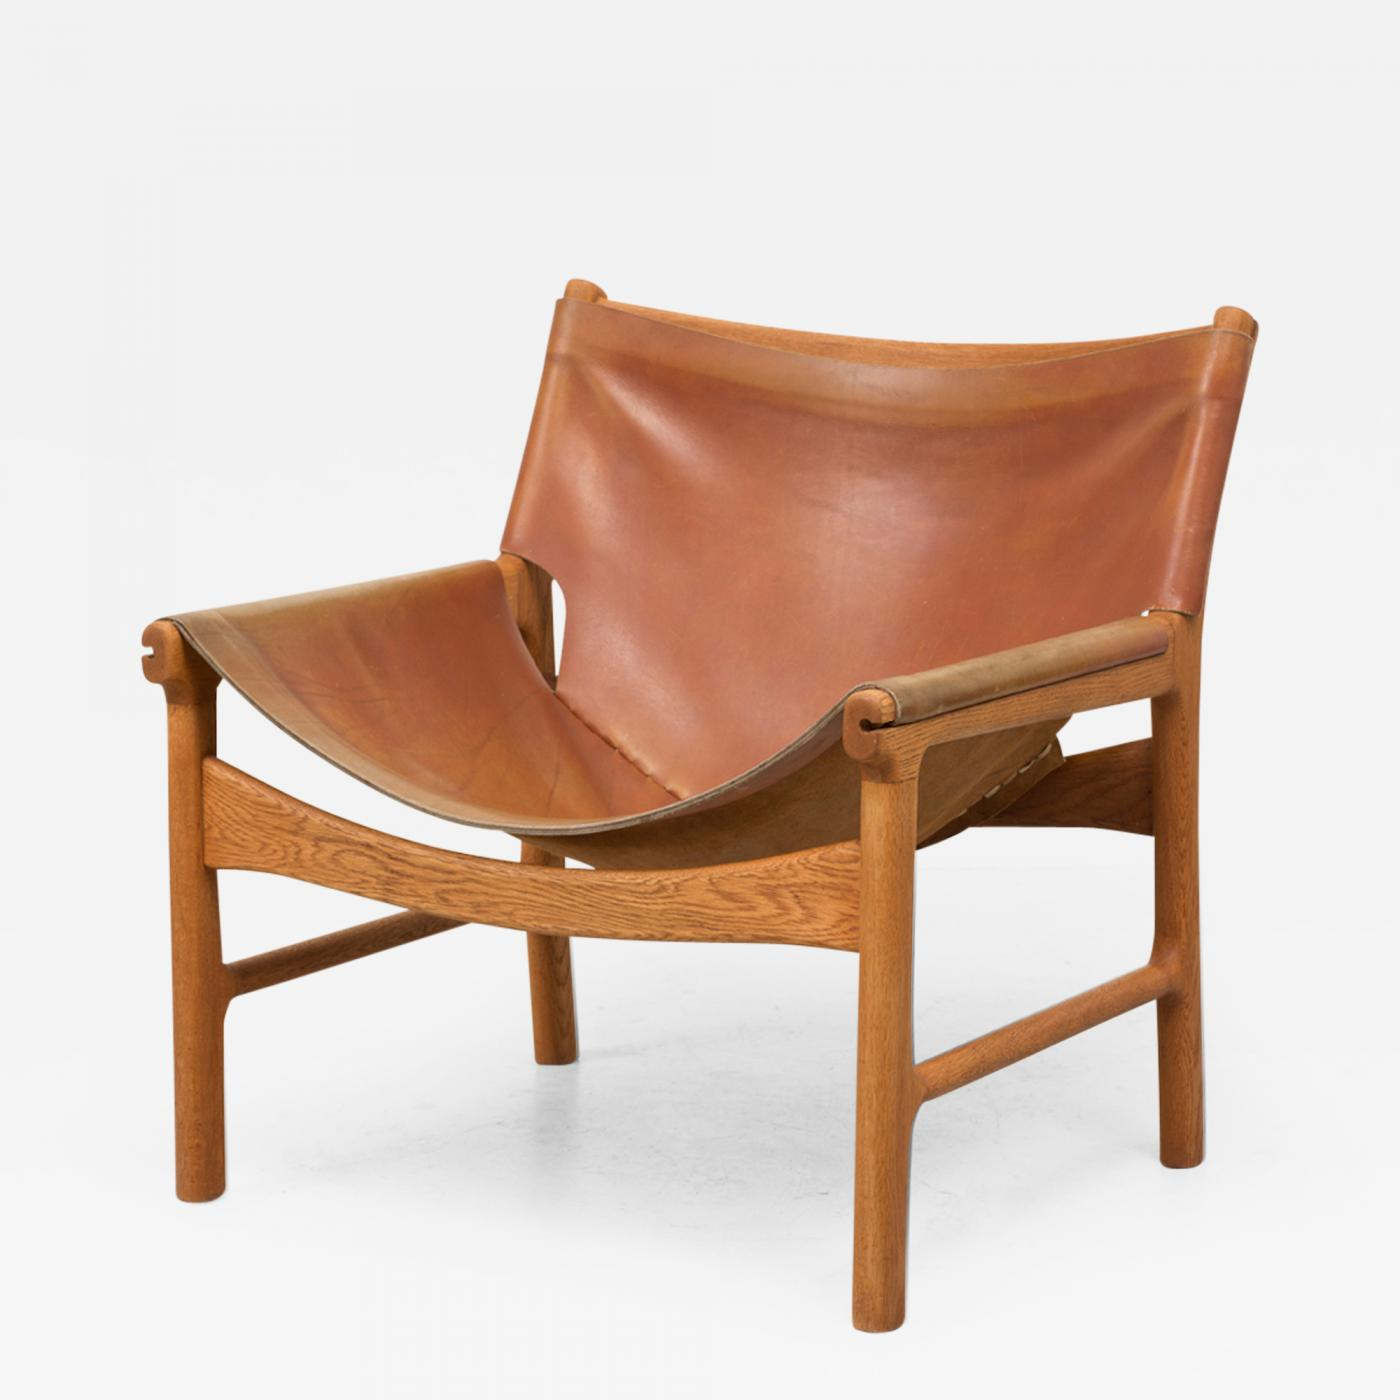 listings furniture seating lounge chairs - Leather Lounge Chair